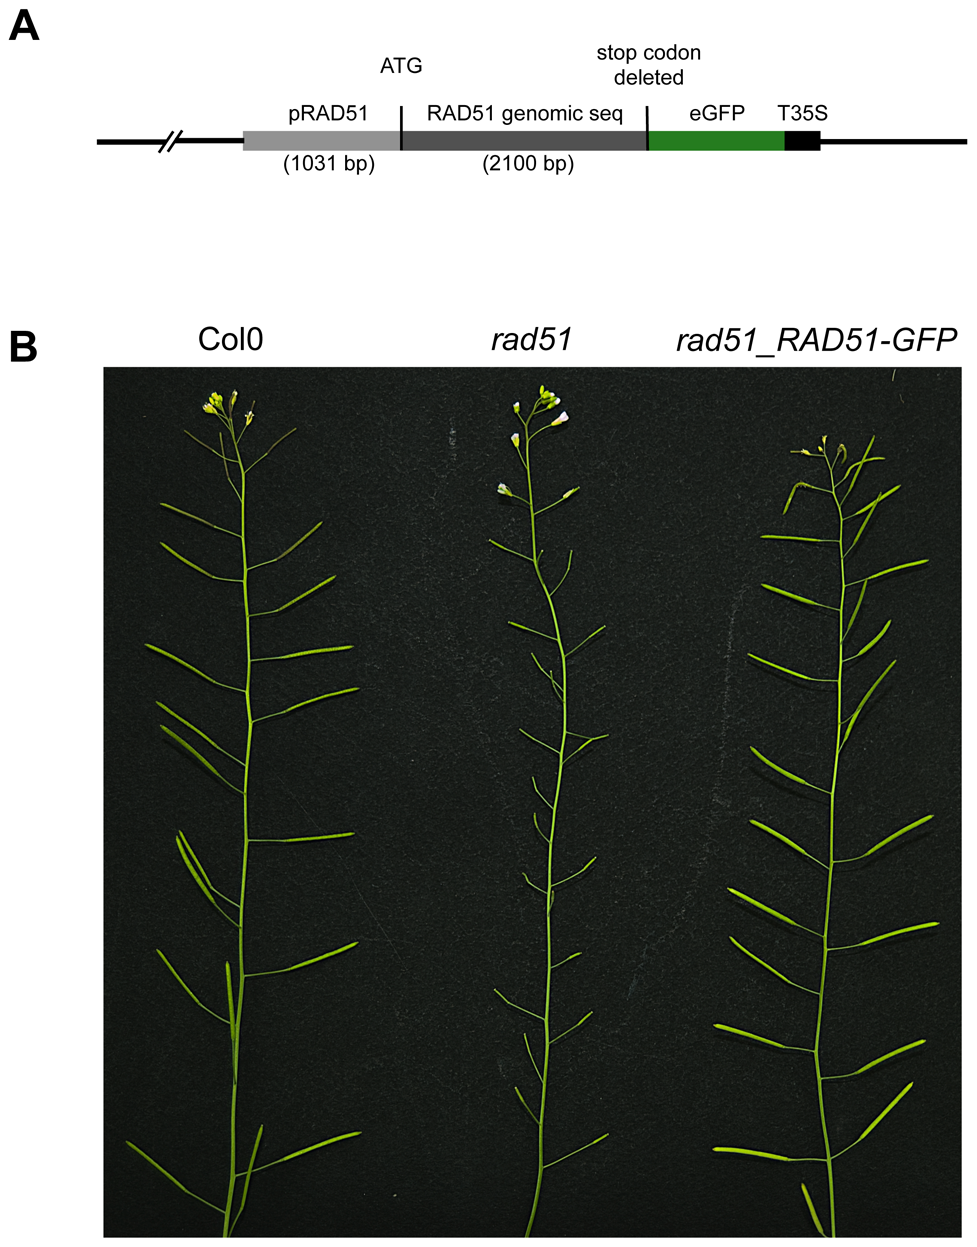 RAD51-GFP restores fertility of the Arabidopsis <i>rad51</i> mutant.